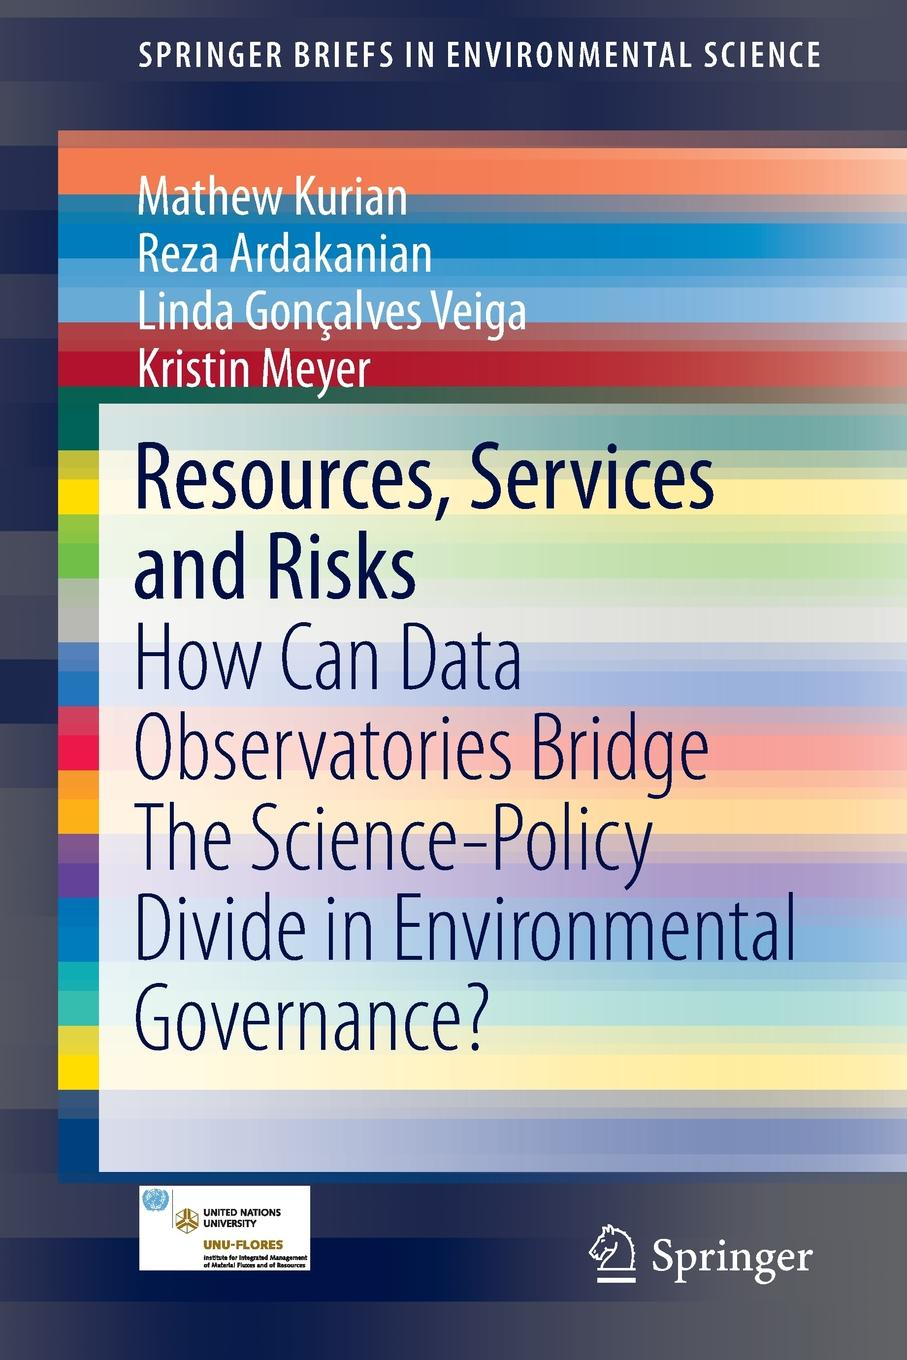 Mathew Kurian, Reza Ardakanian, Linda Gonçalves Veiga Resources, Services and Risks. How Can Data Observatories Bridge The Science-Policy Divide in Environmental Governance? недорого